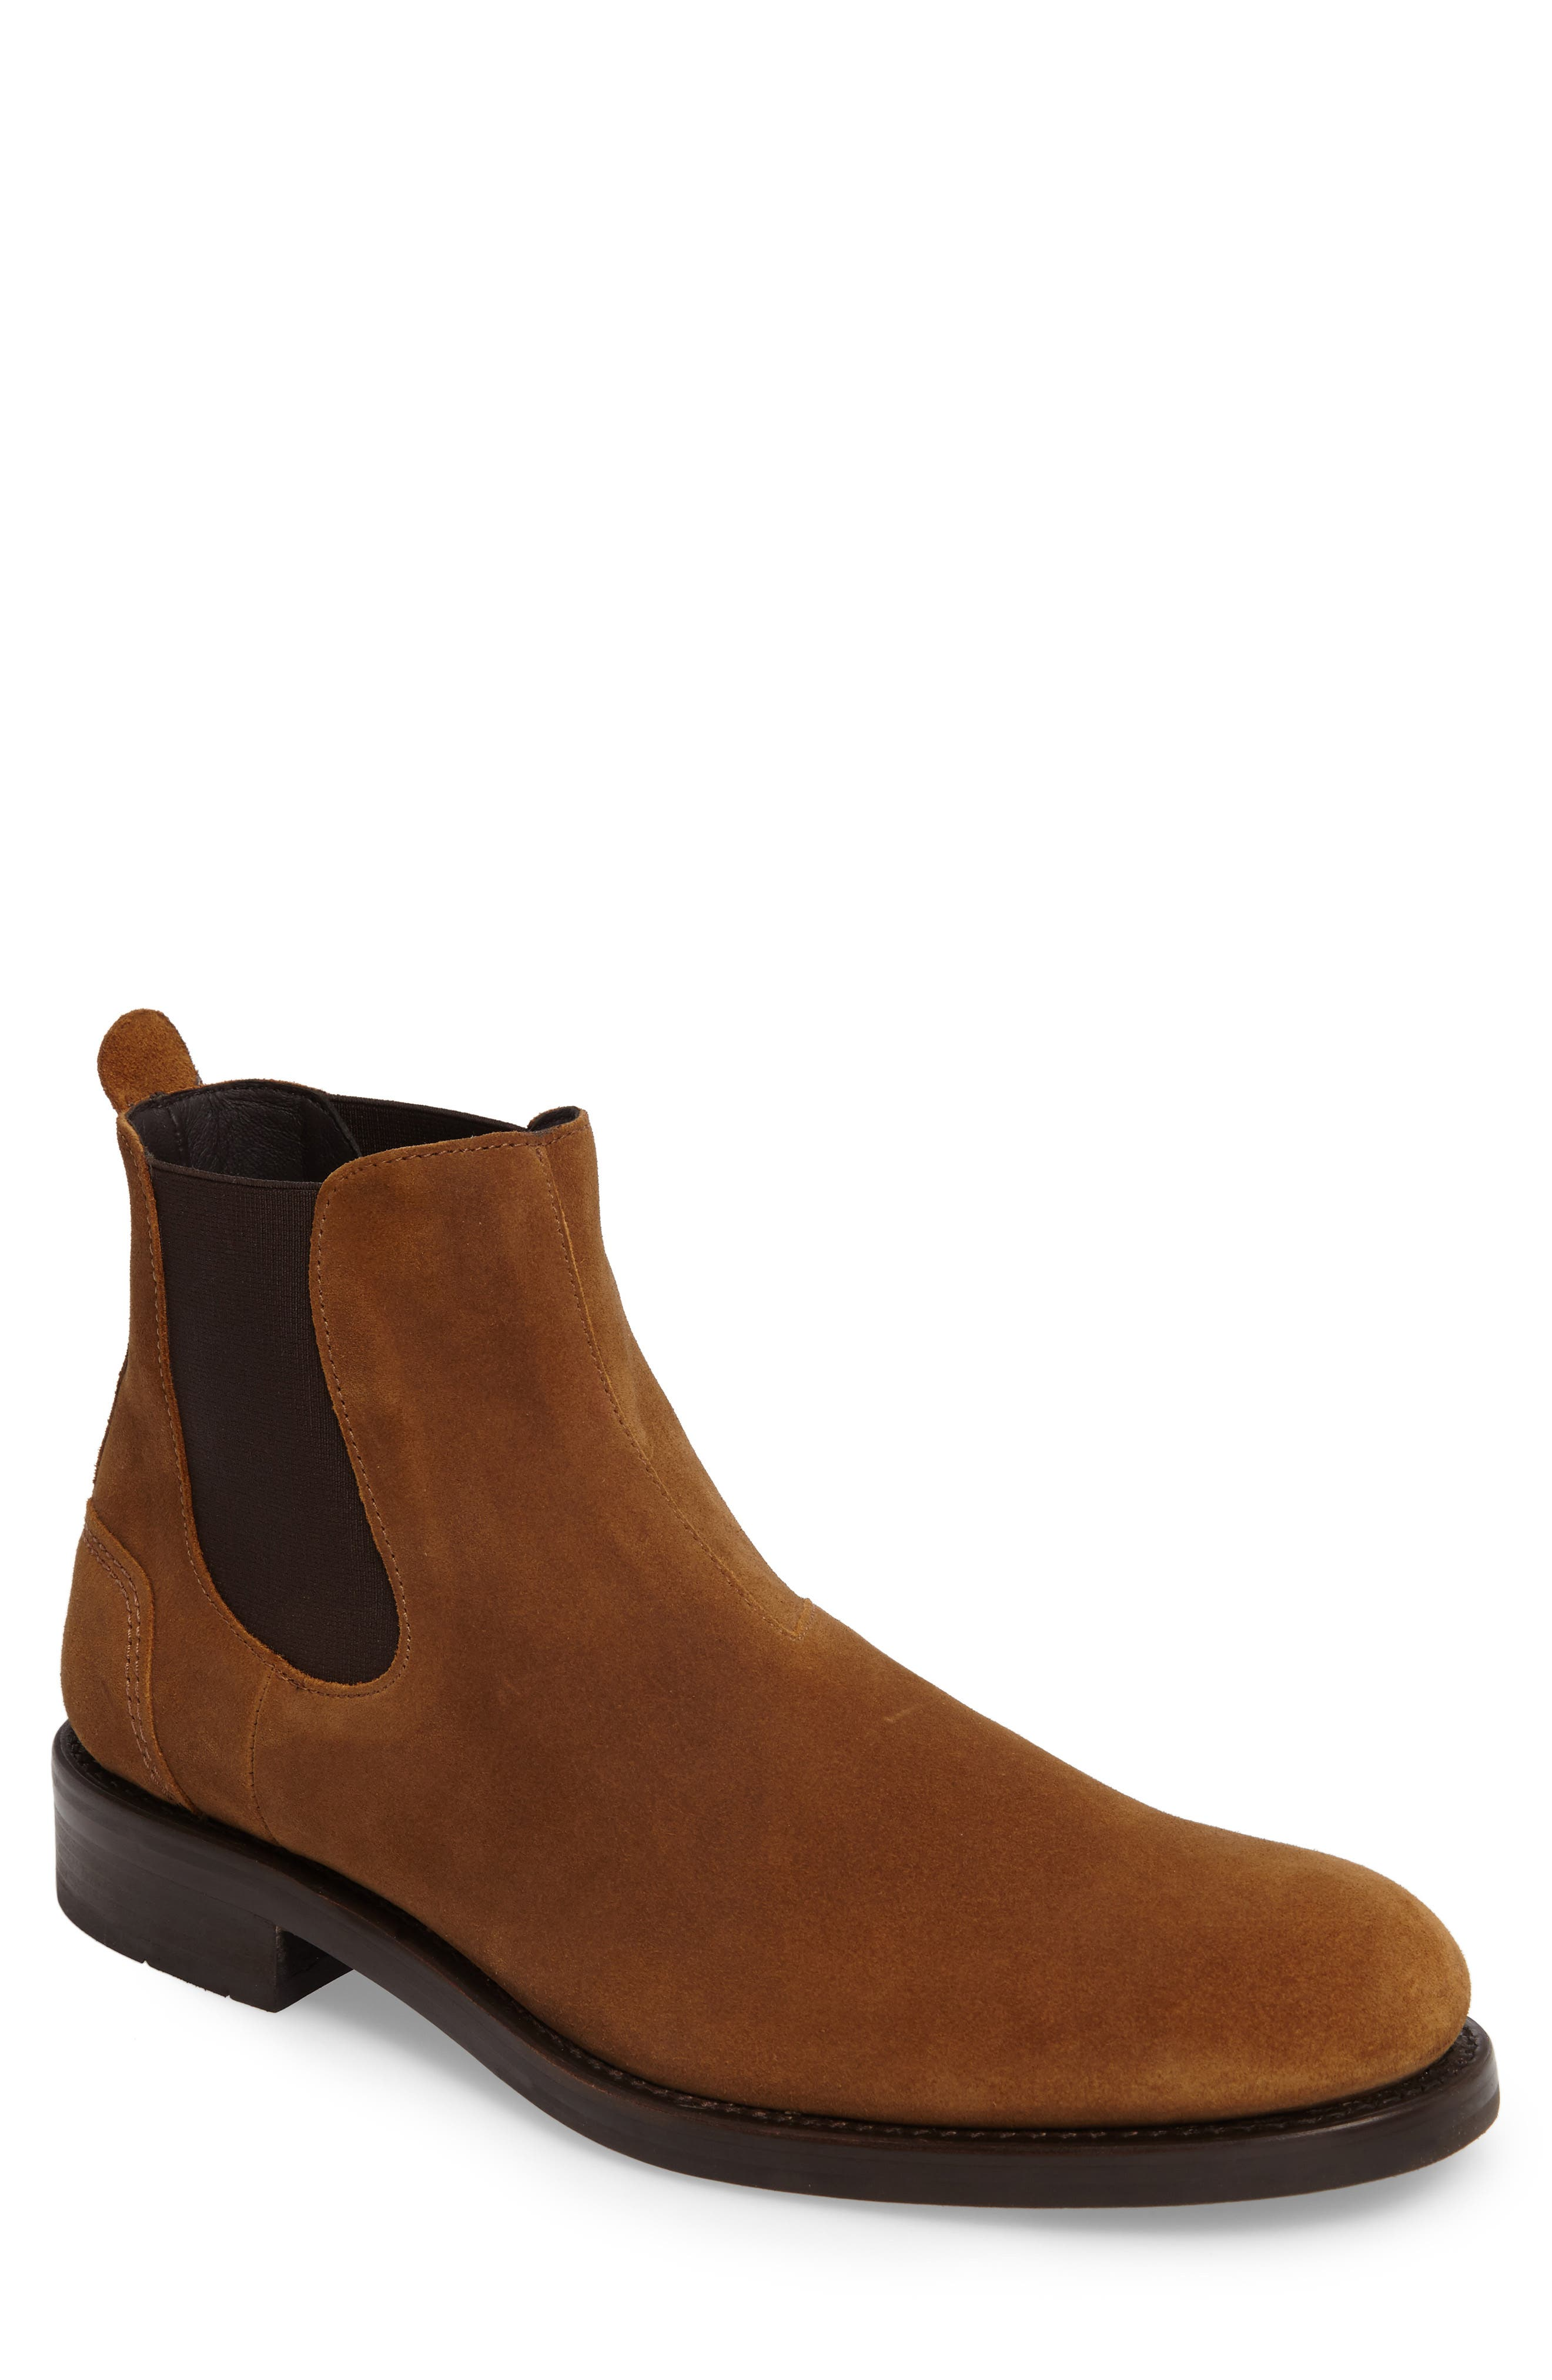 Alternate Image 1 Selected - Wolverine Montague Chelsea Boot